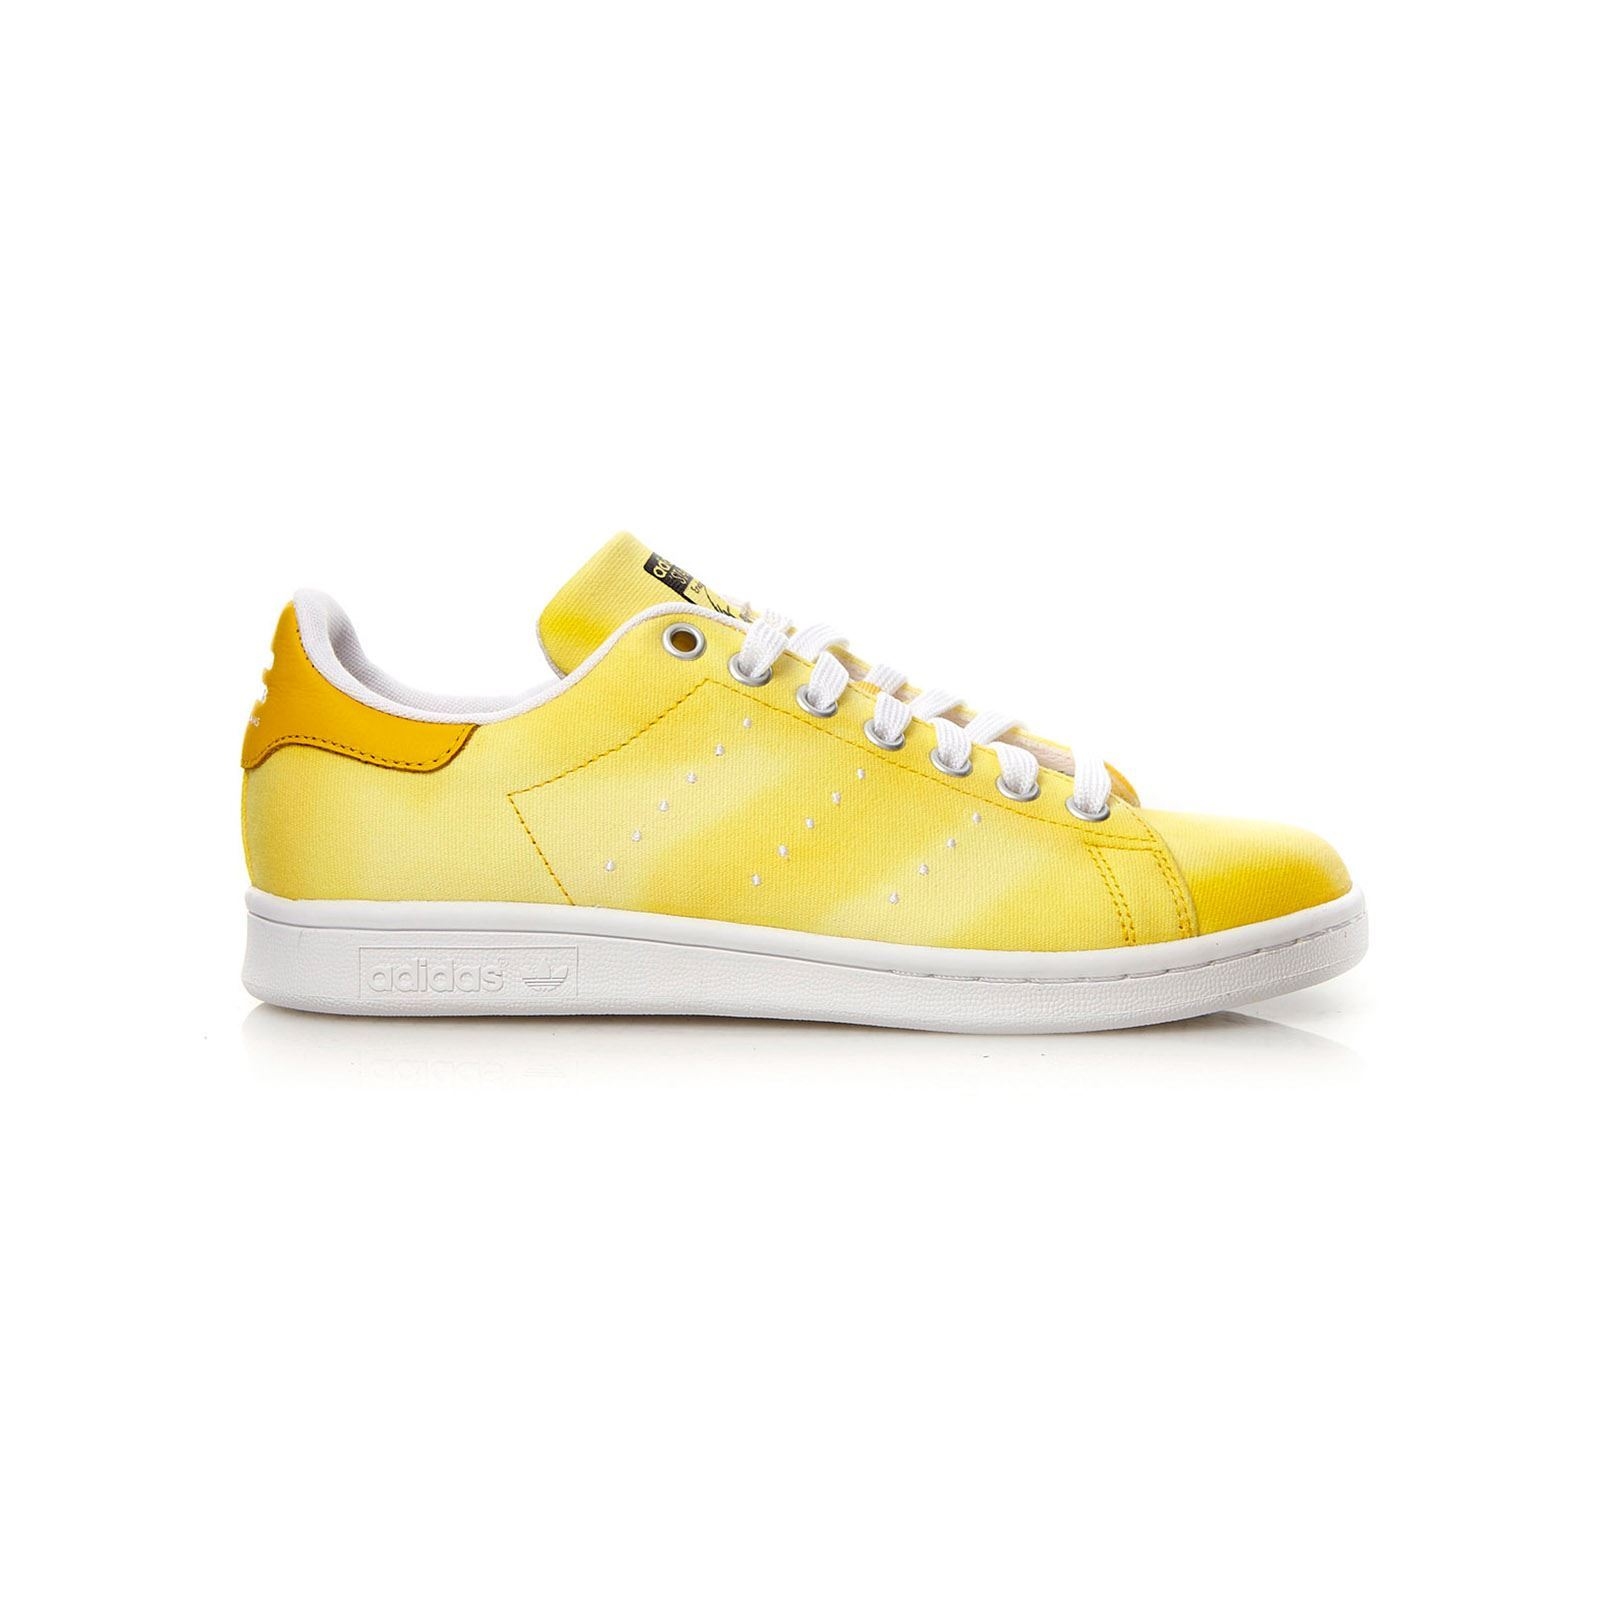 Adidas Originals Pw Hu Holi Stan Smith - Baskets - jaune